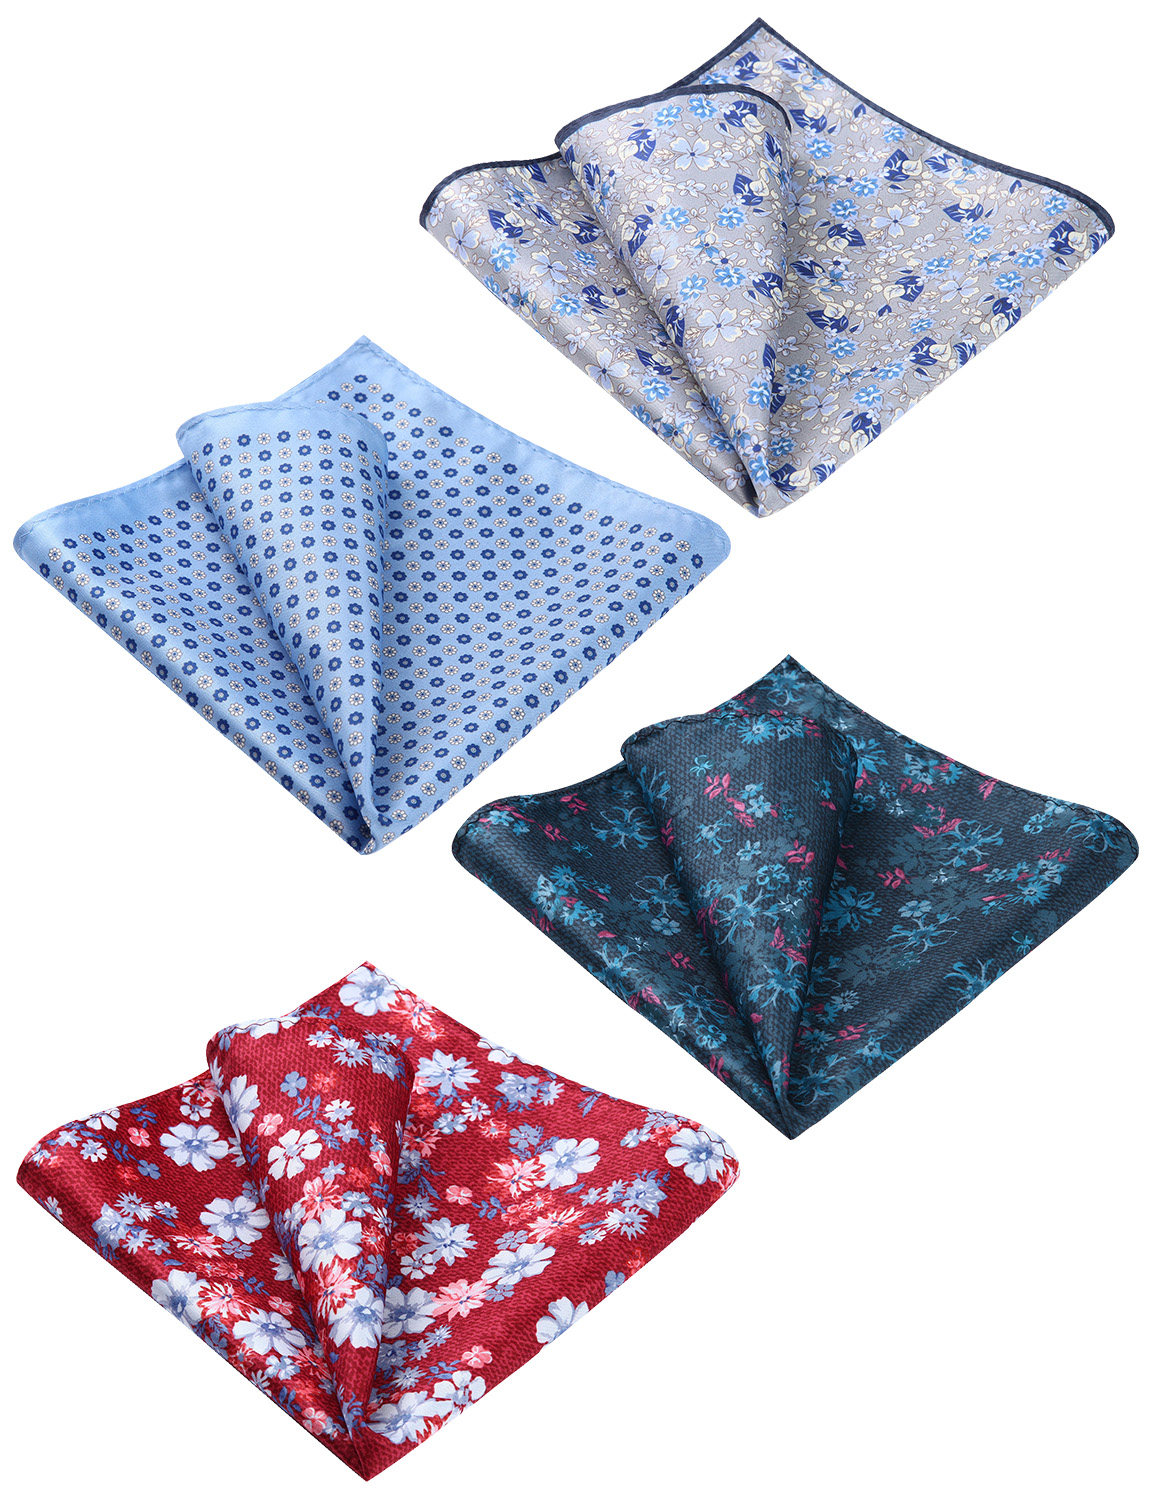 Wedding Party Handkerchief Classic 4 Piece Assorted Floral Paisley Printed Men 100% Silk Handkerchief Pocket Square Hanky Set#